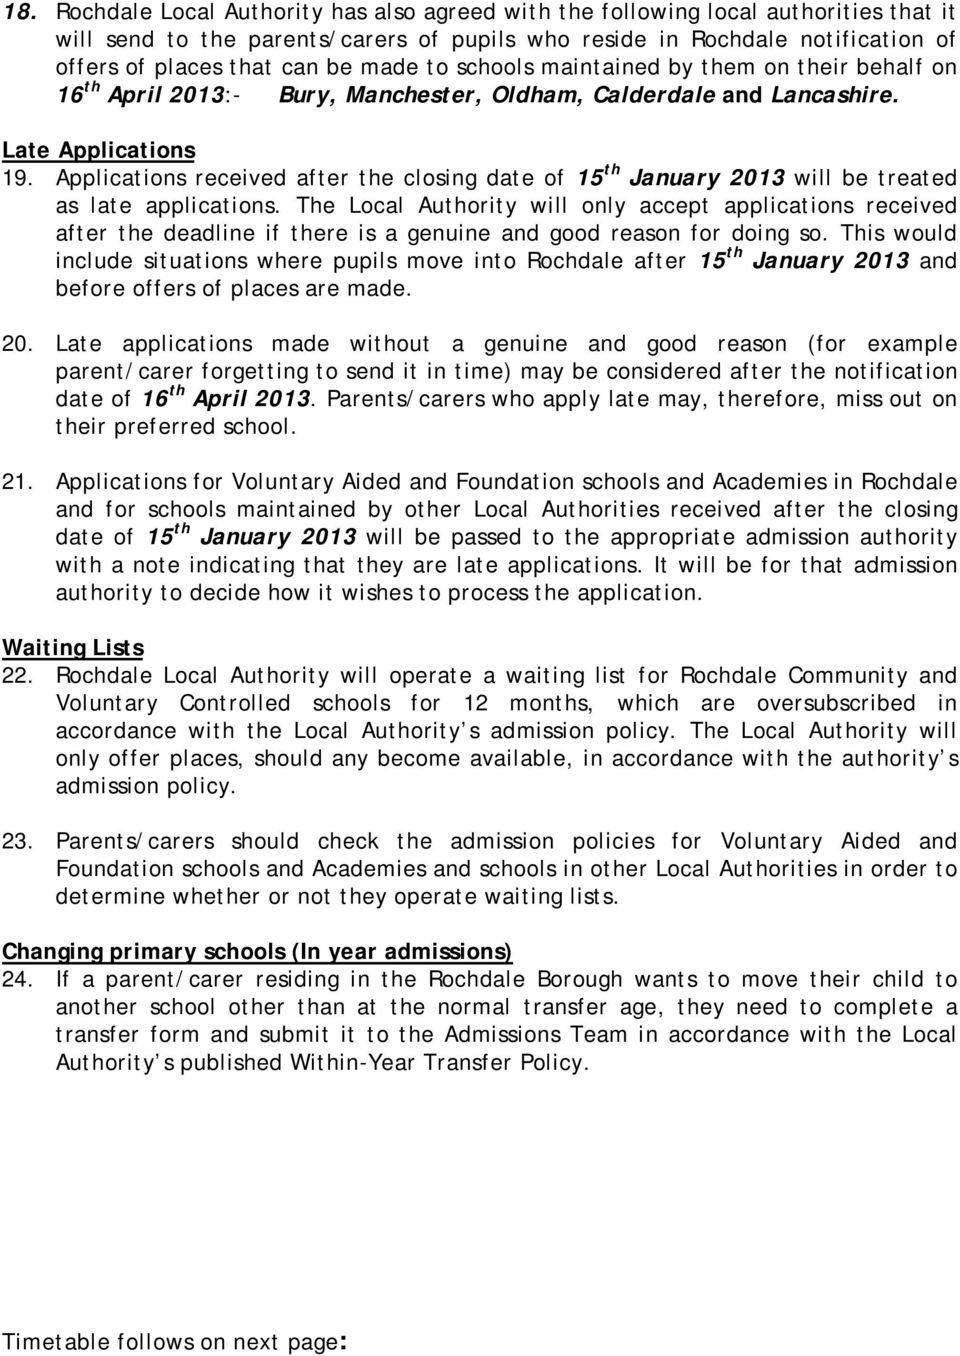 Applications received after the closing date of 15 th January 2013 will be treated as late applications.